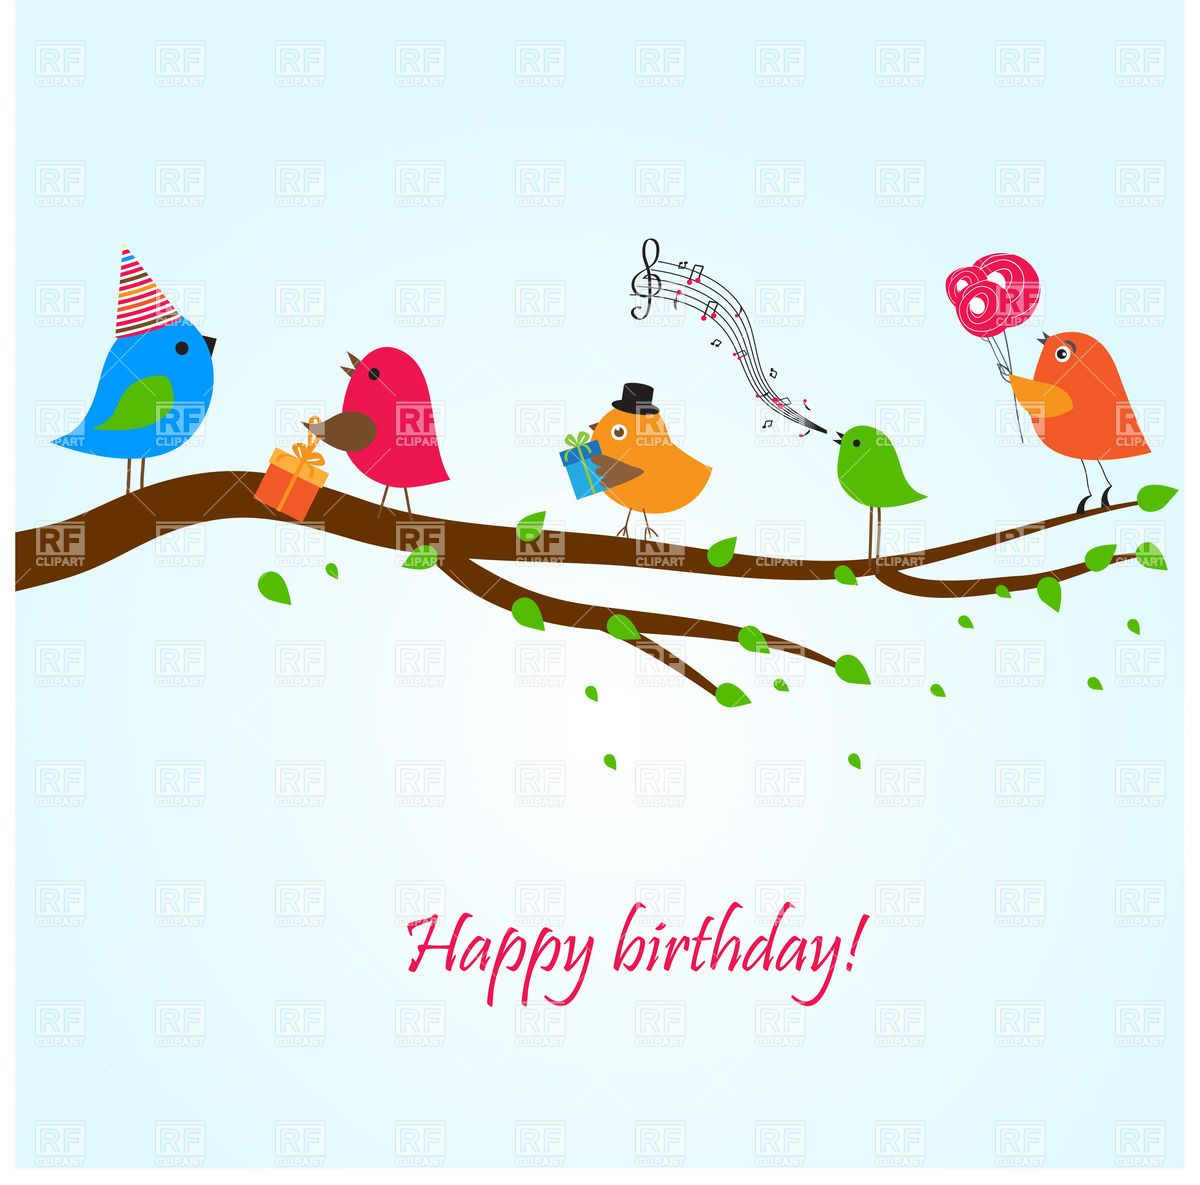 Birthday Greeting Card With Birds On The Branch Singing Songs